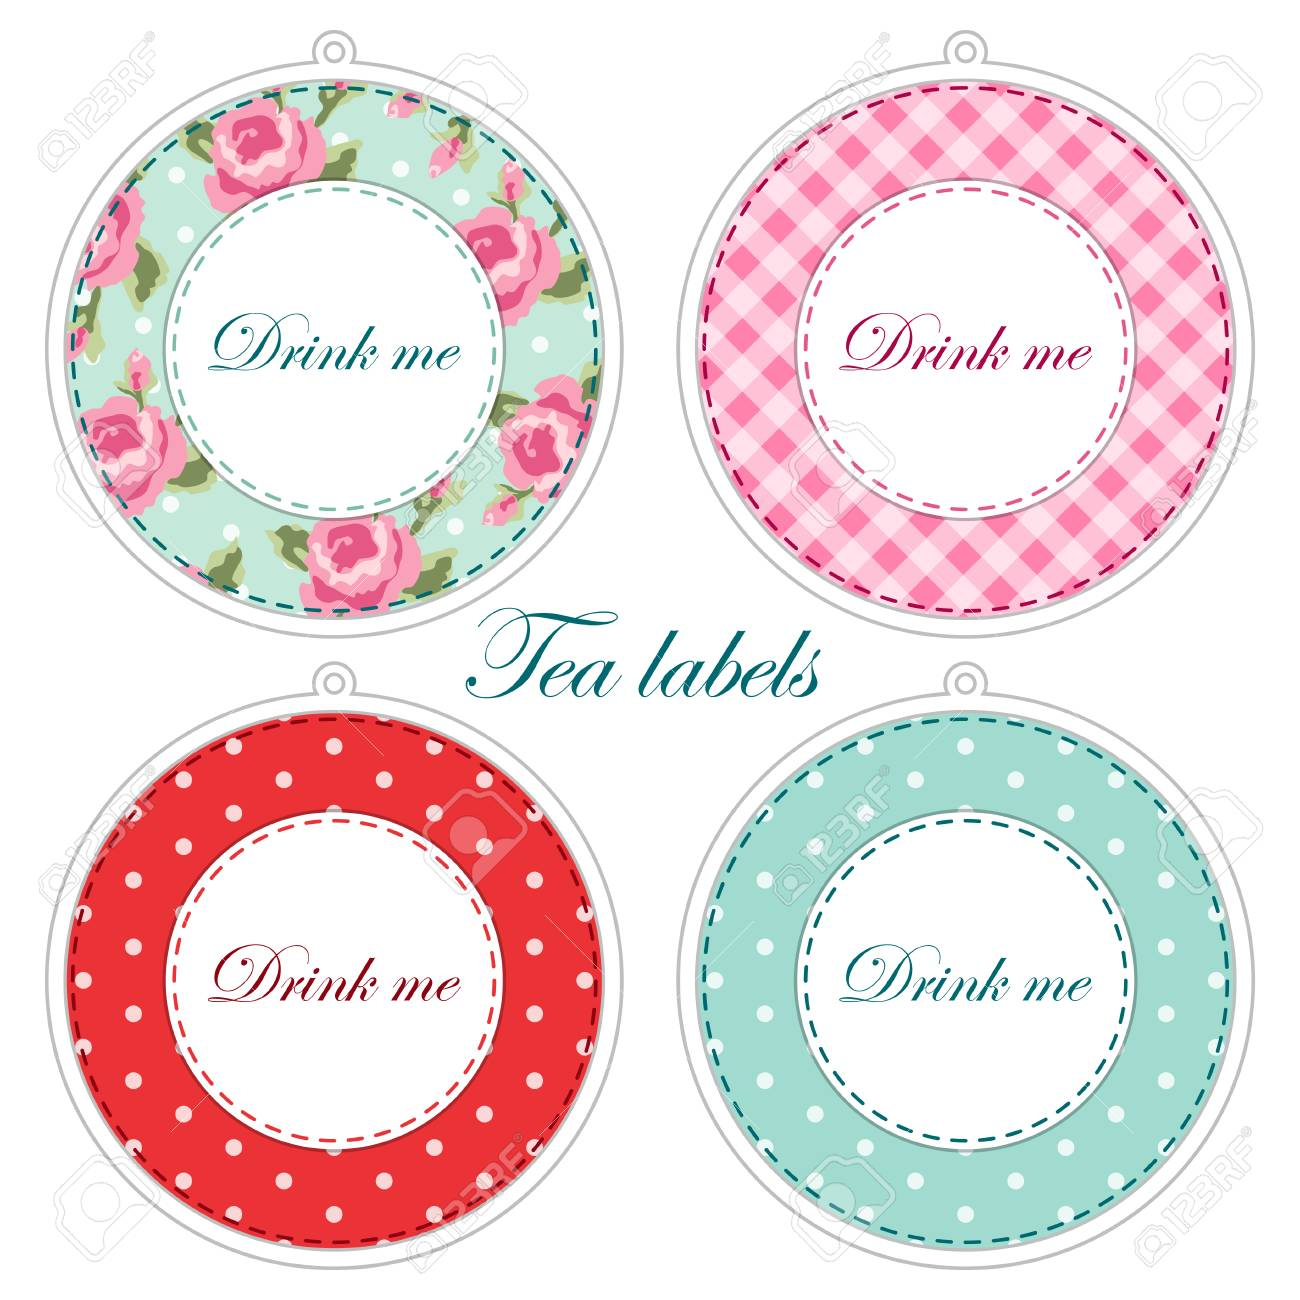 photograph about Tea Party Printable named Tea bash printables as tea labels,cupcake toppers or tags within just..